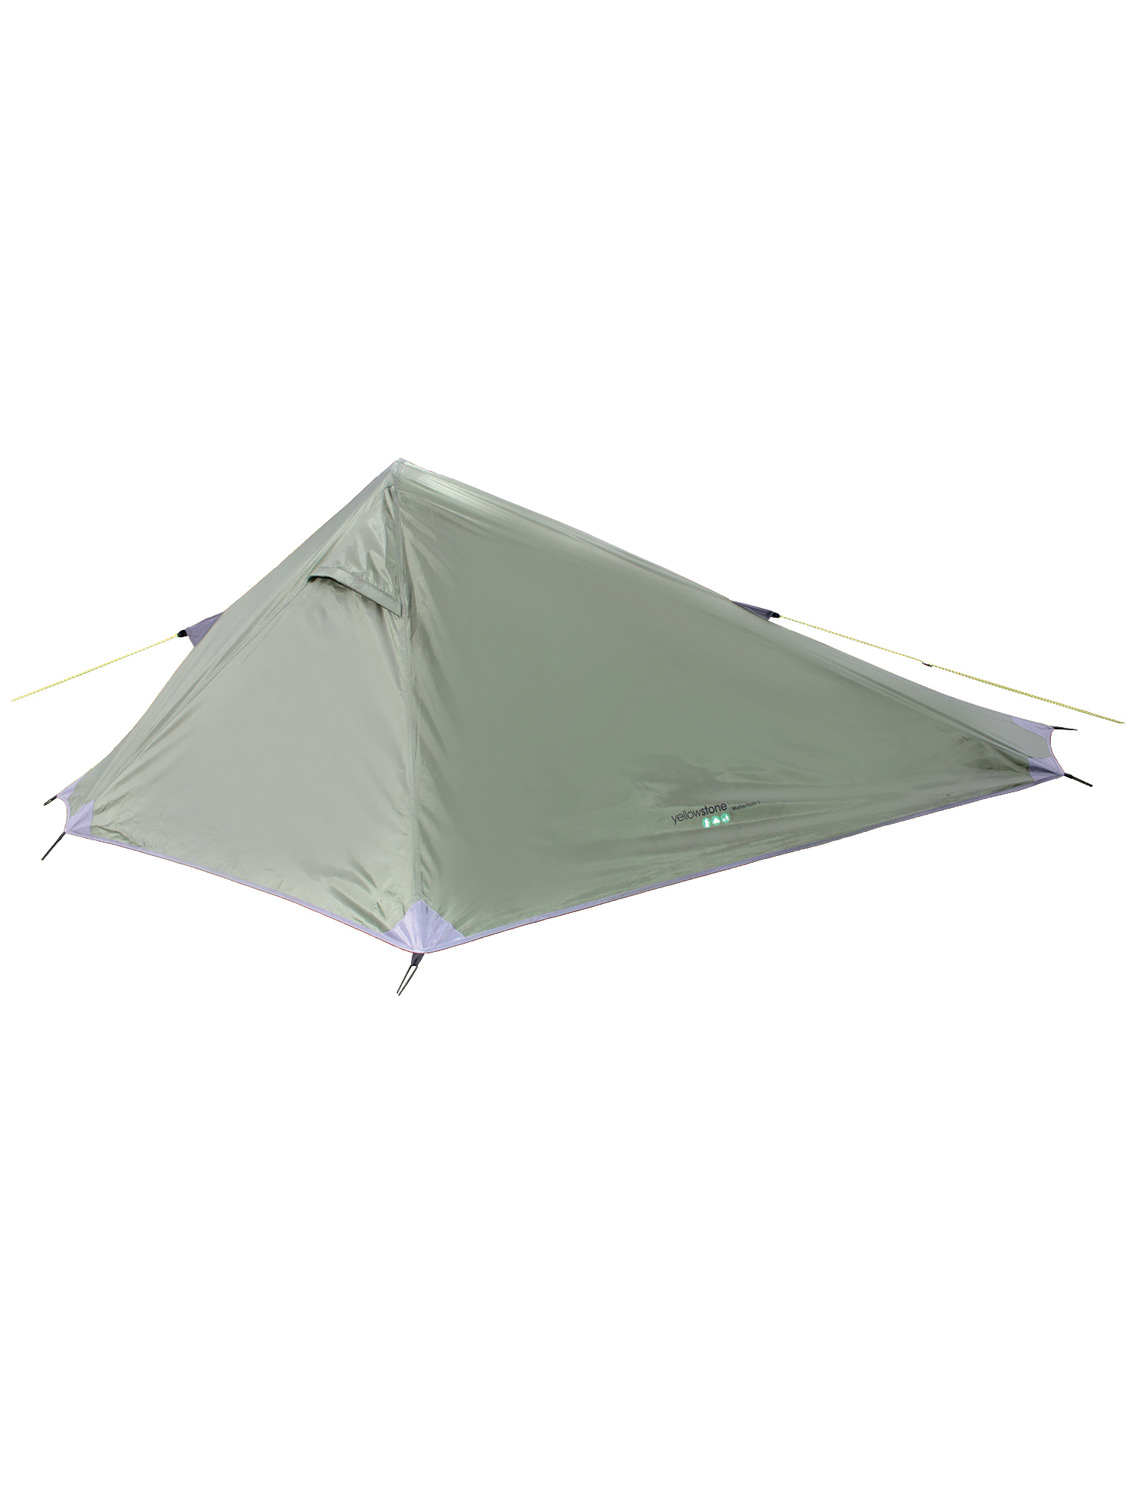 Yellowstone Alpine 2 Man Tent  sc 1 st  Outdoor Hub & Yellowstone Alpine 2 Man Tent | All Camping | Outdoor Hub